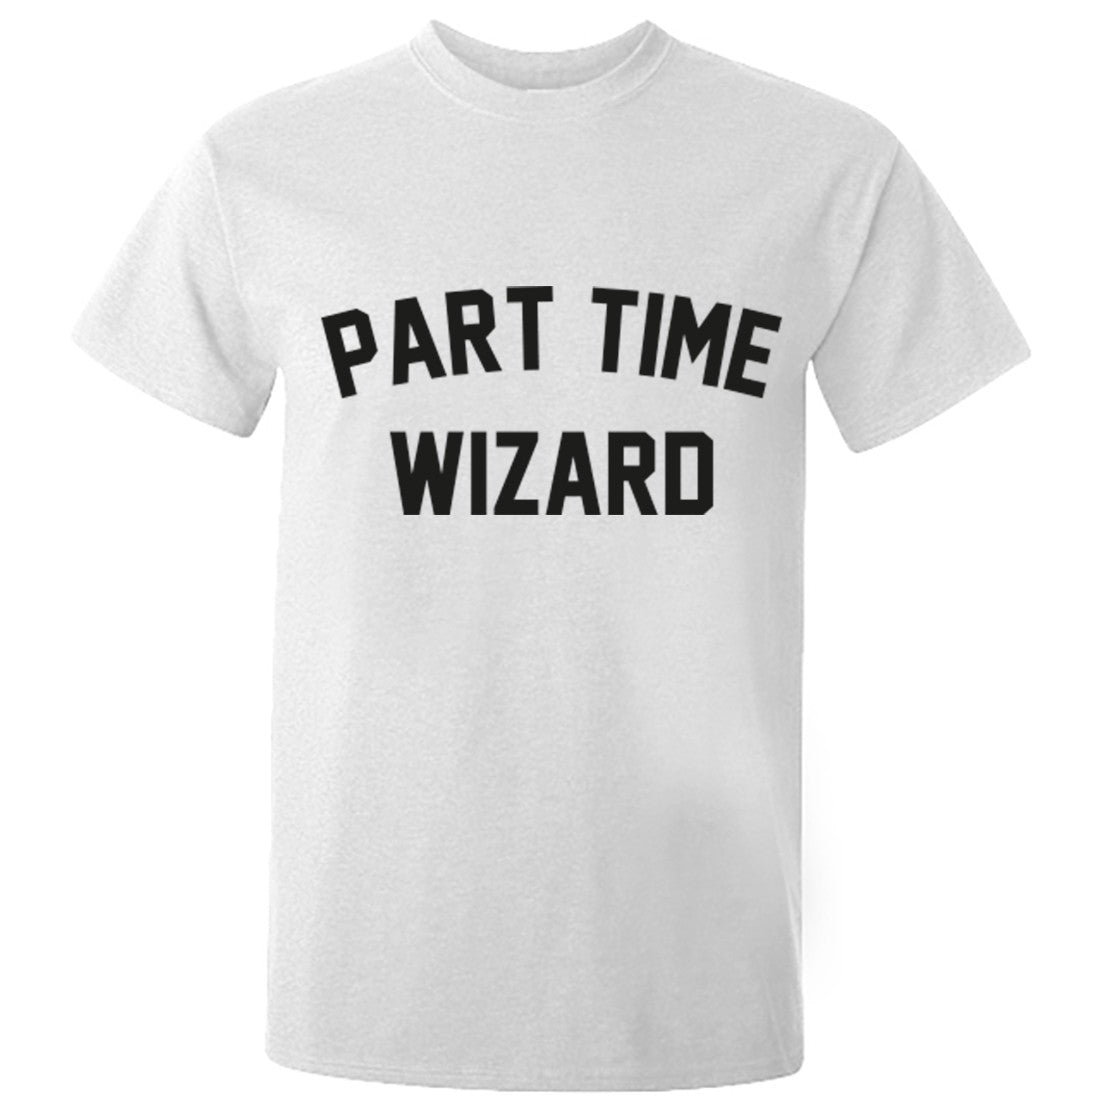 Part Time Wizard Unisex Fit T-Shirt K0756 - Illustrated Identity Ltd.